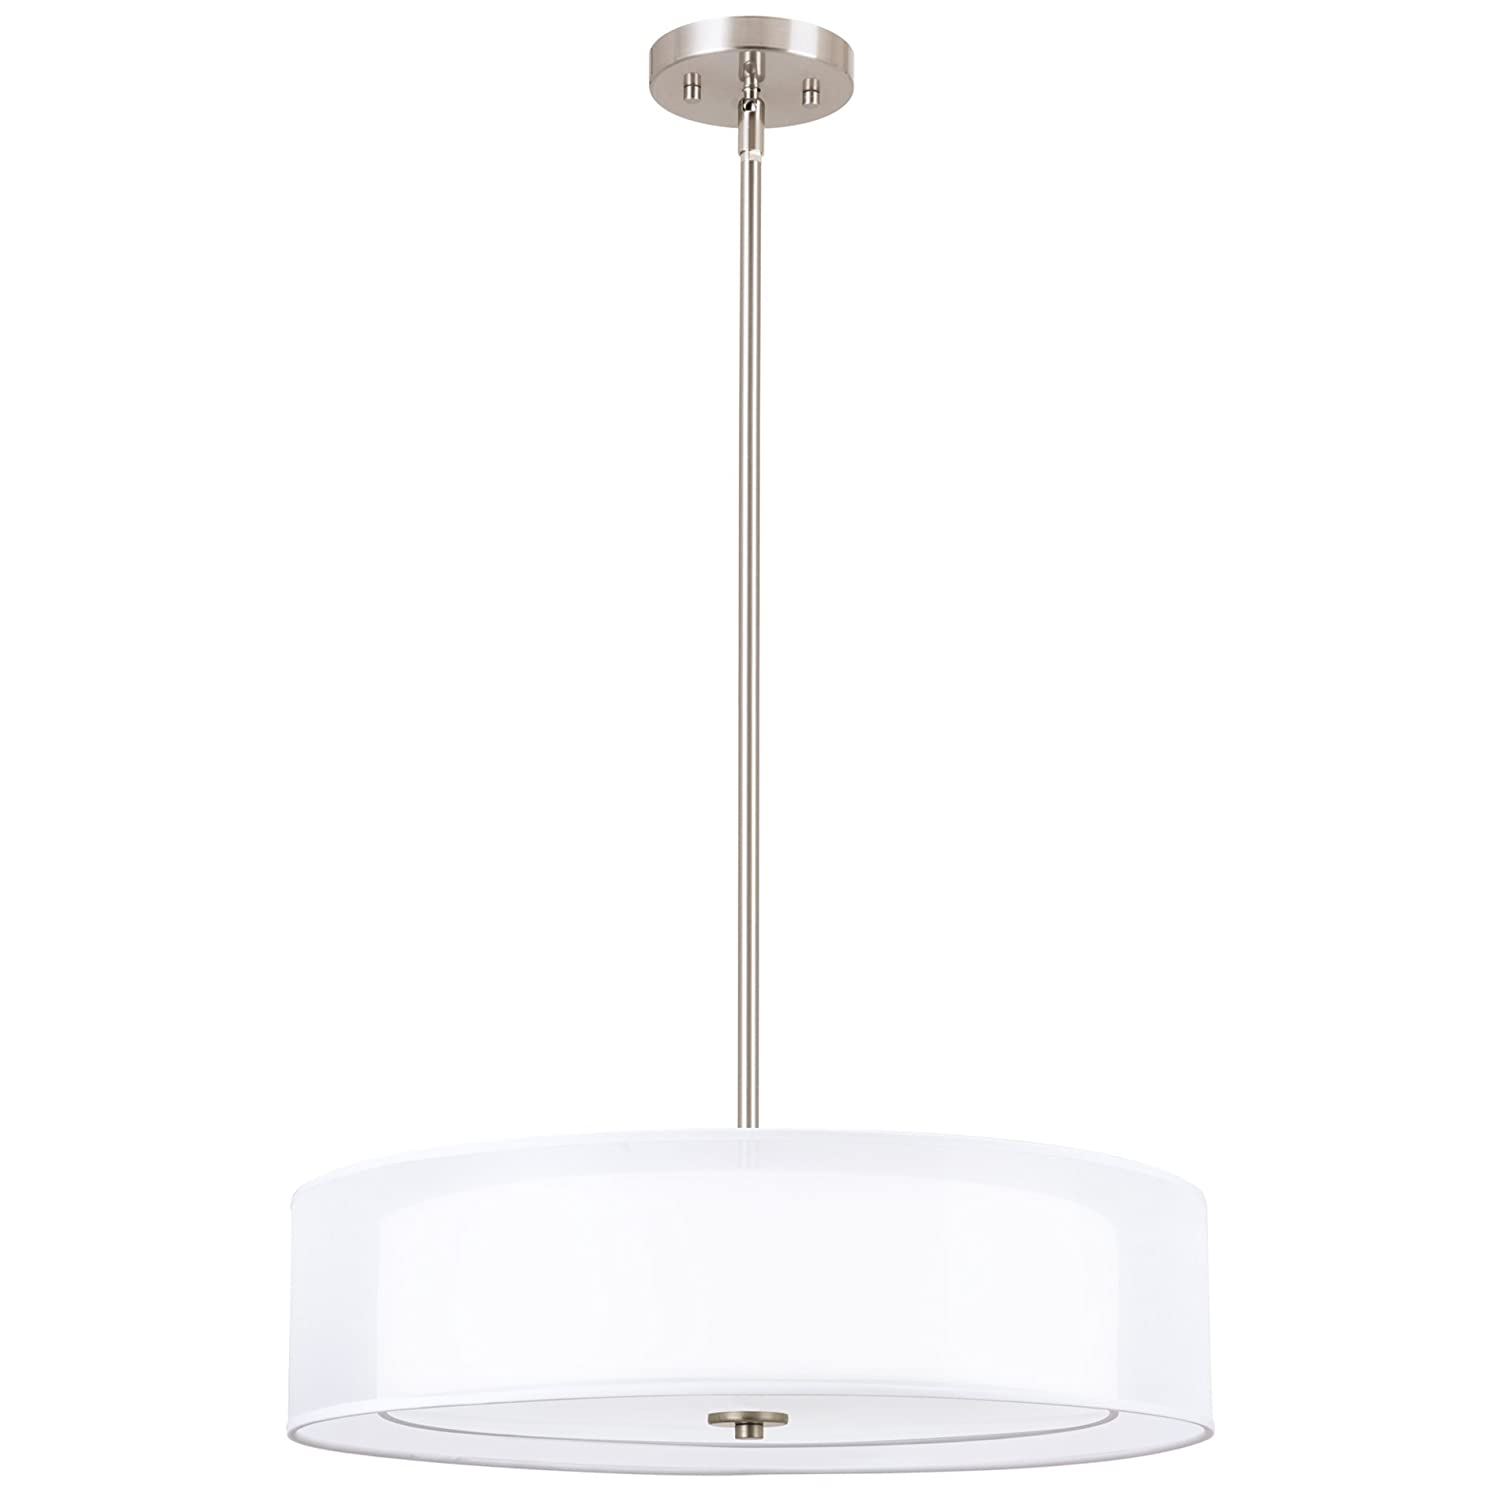 "Kira Home Lindos 20"" Modern 3-Light Double Drum Chandelier + Glass Diffuser, Stem-Hung with Adjustable Height, Brushed Nickel Finish"